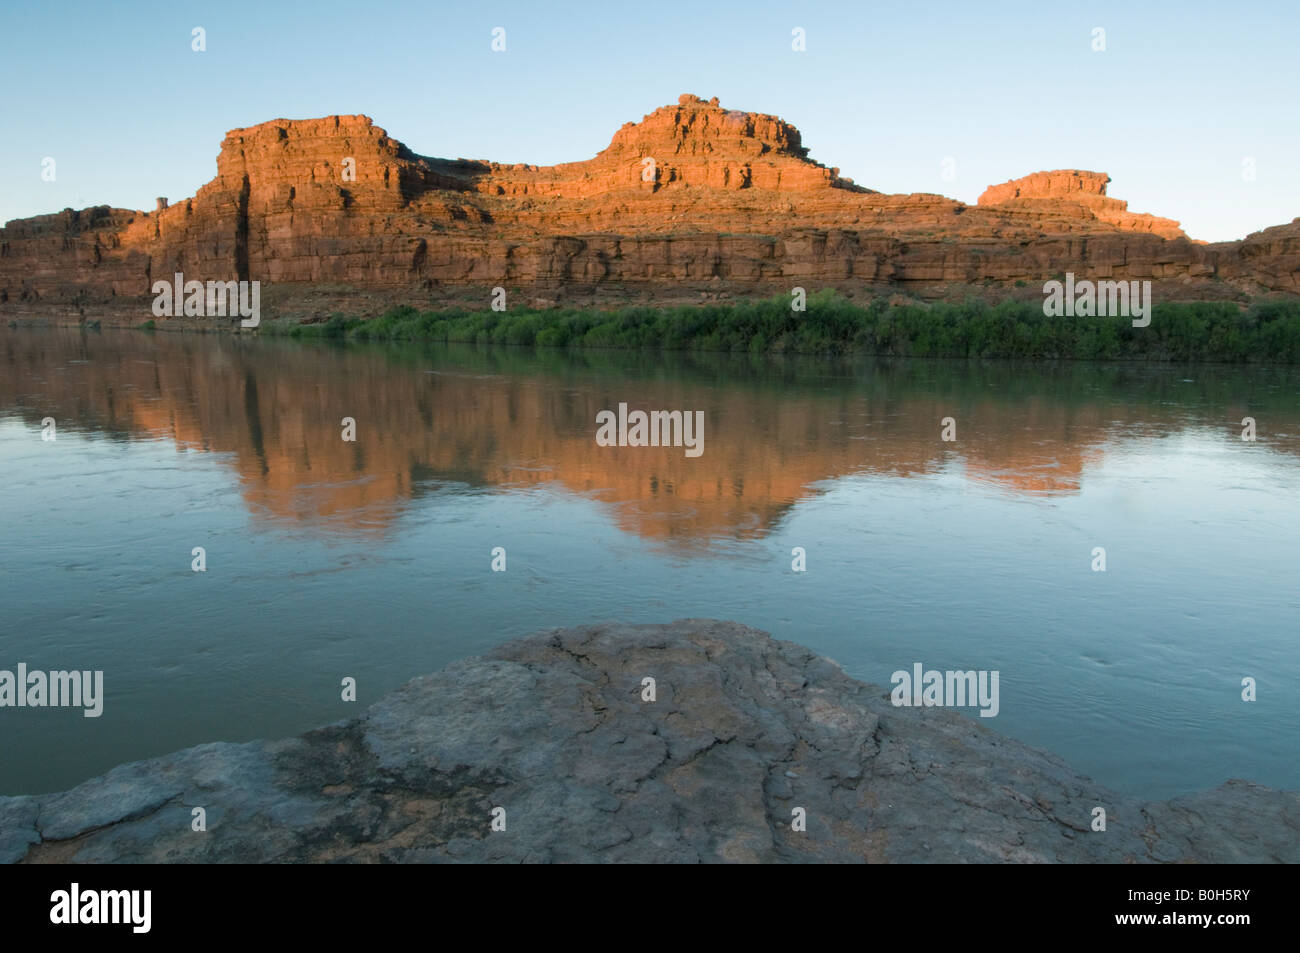 Dawn, Canyonlands National Park, Meander Canyon, Colorado River, Utah - Stock Image